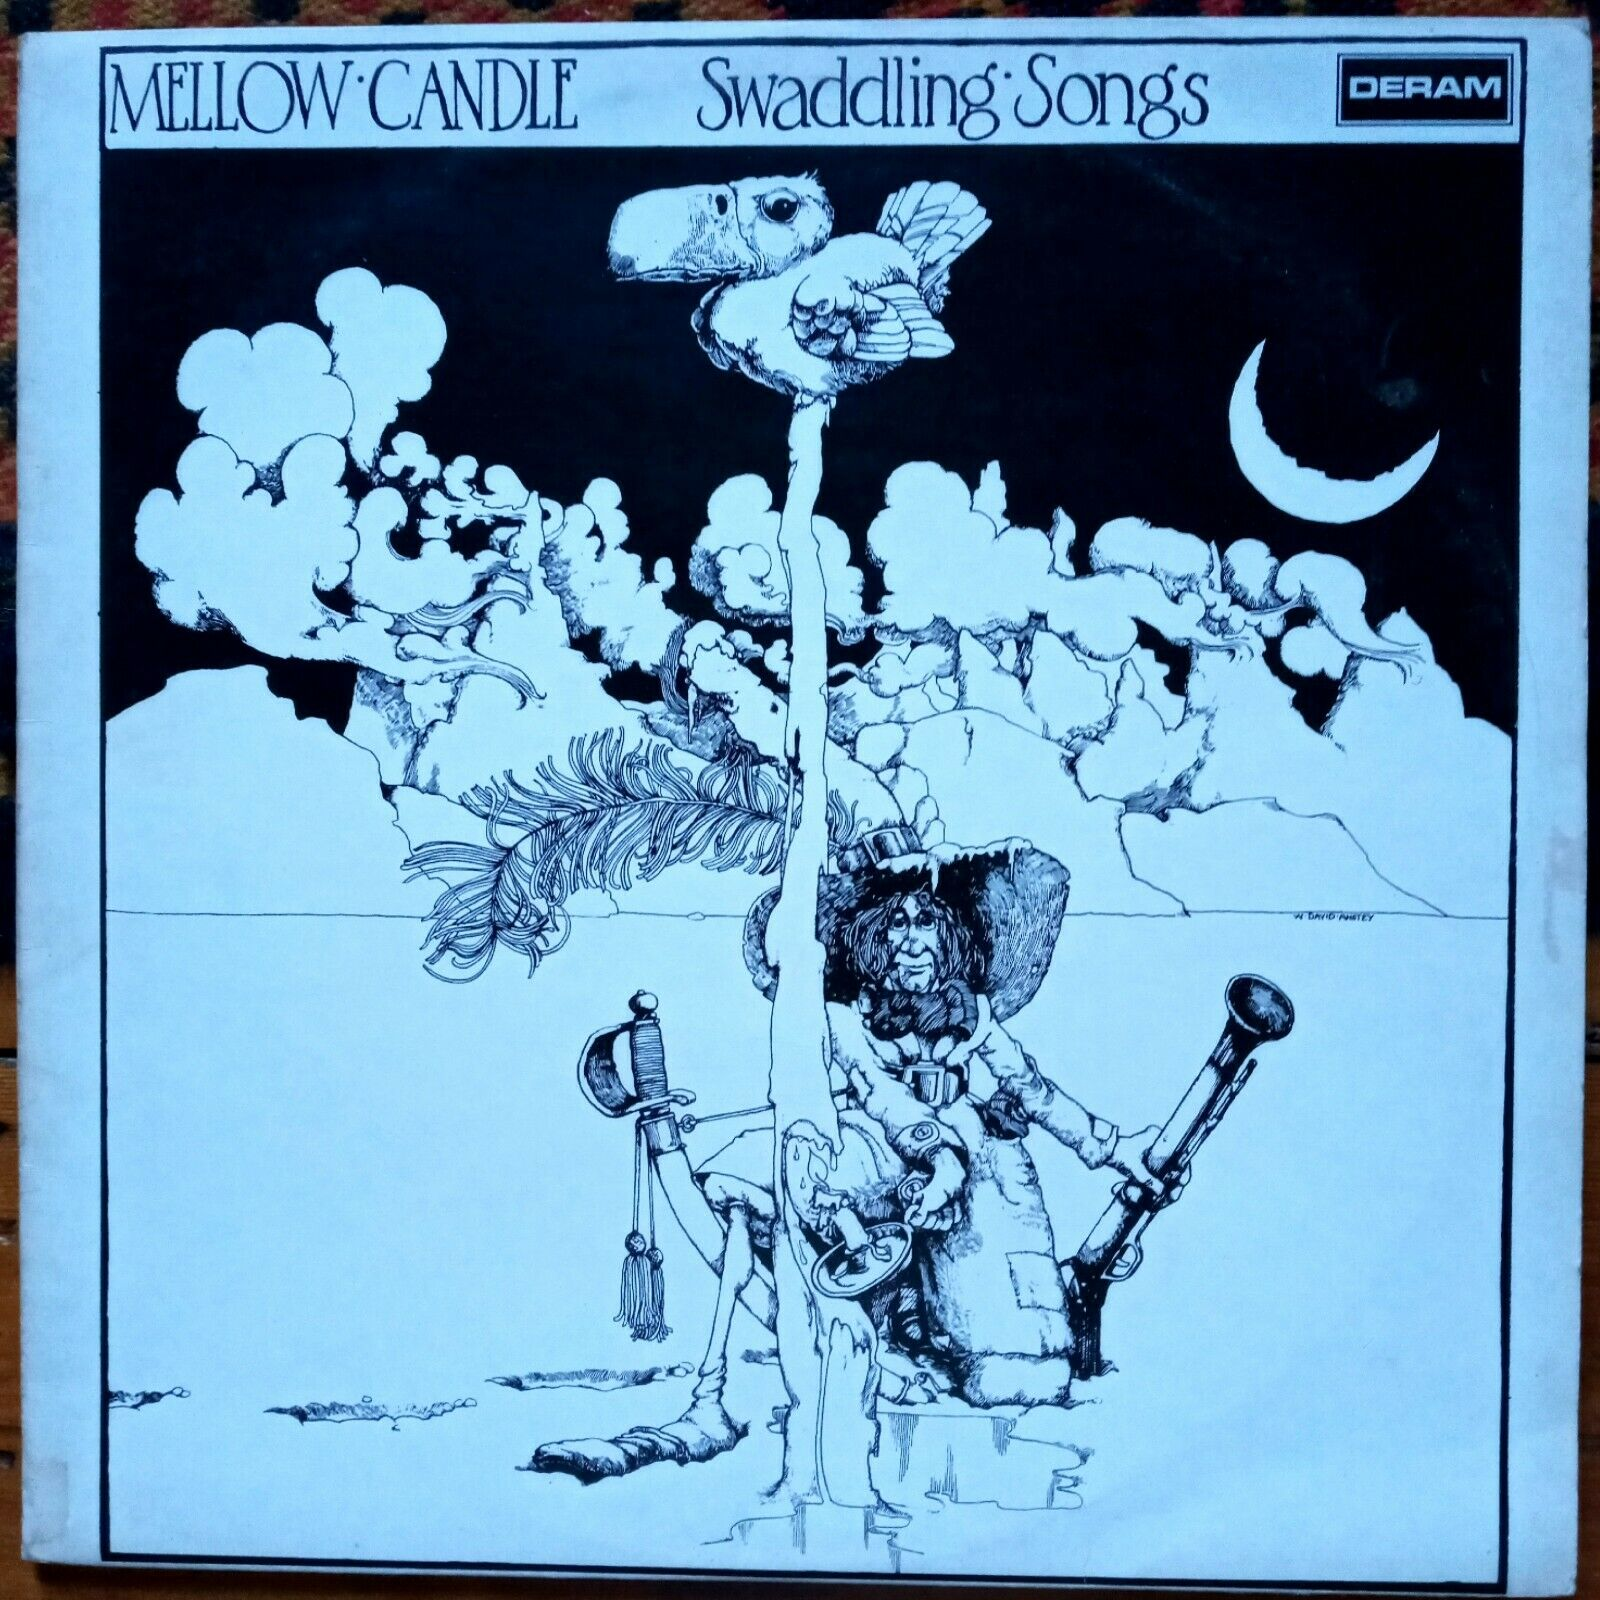 Mellow Candle - Swaddling Songs - Deram - 1972 UK First Pressing